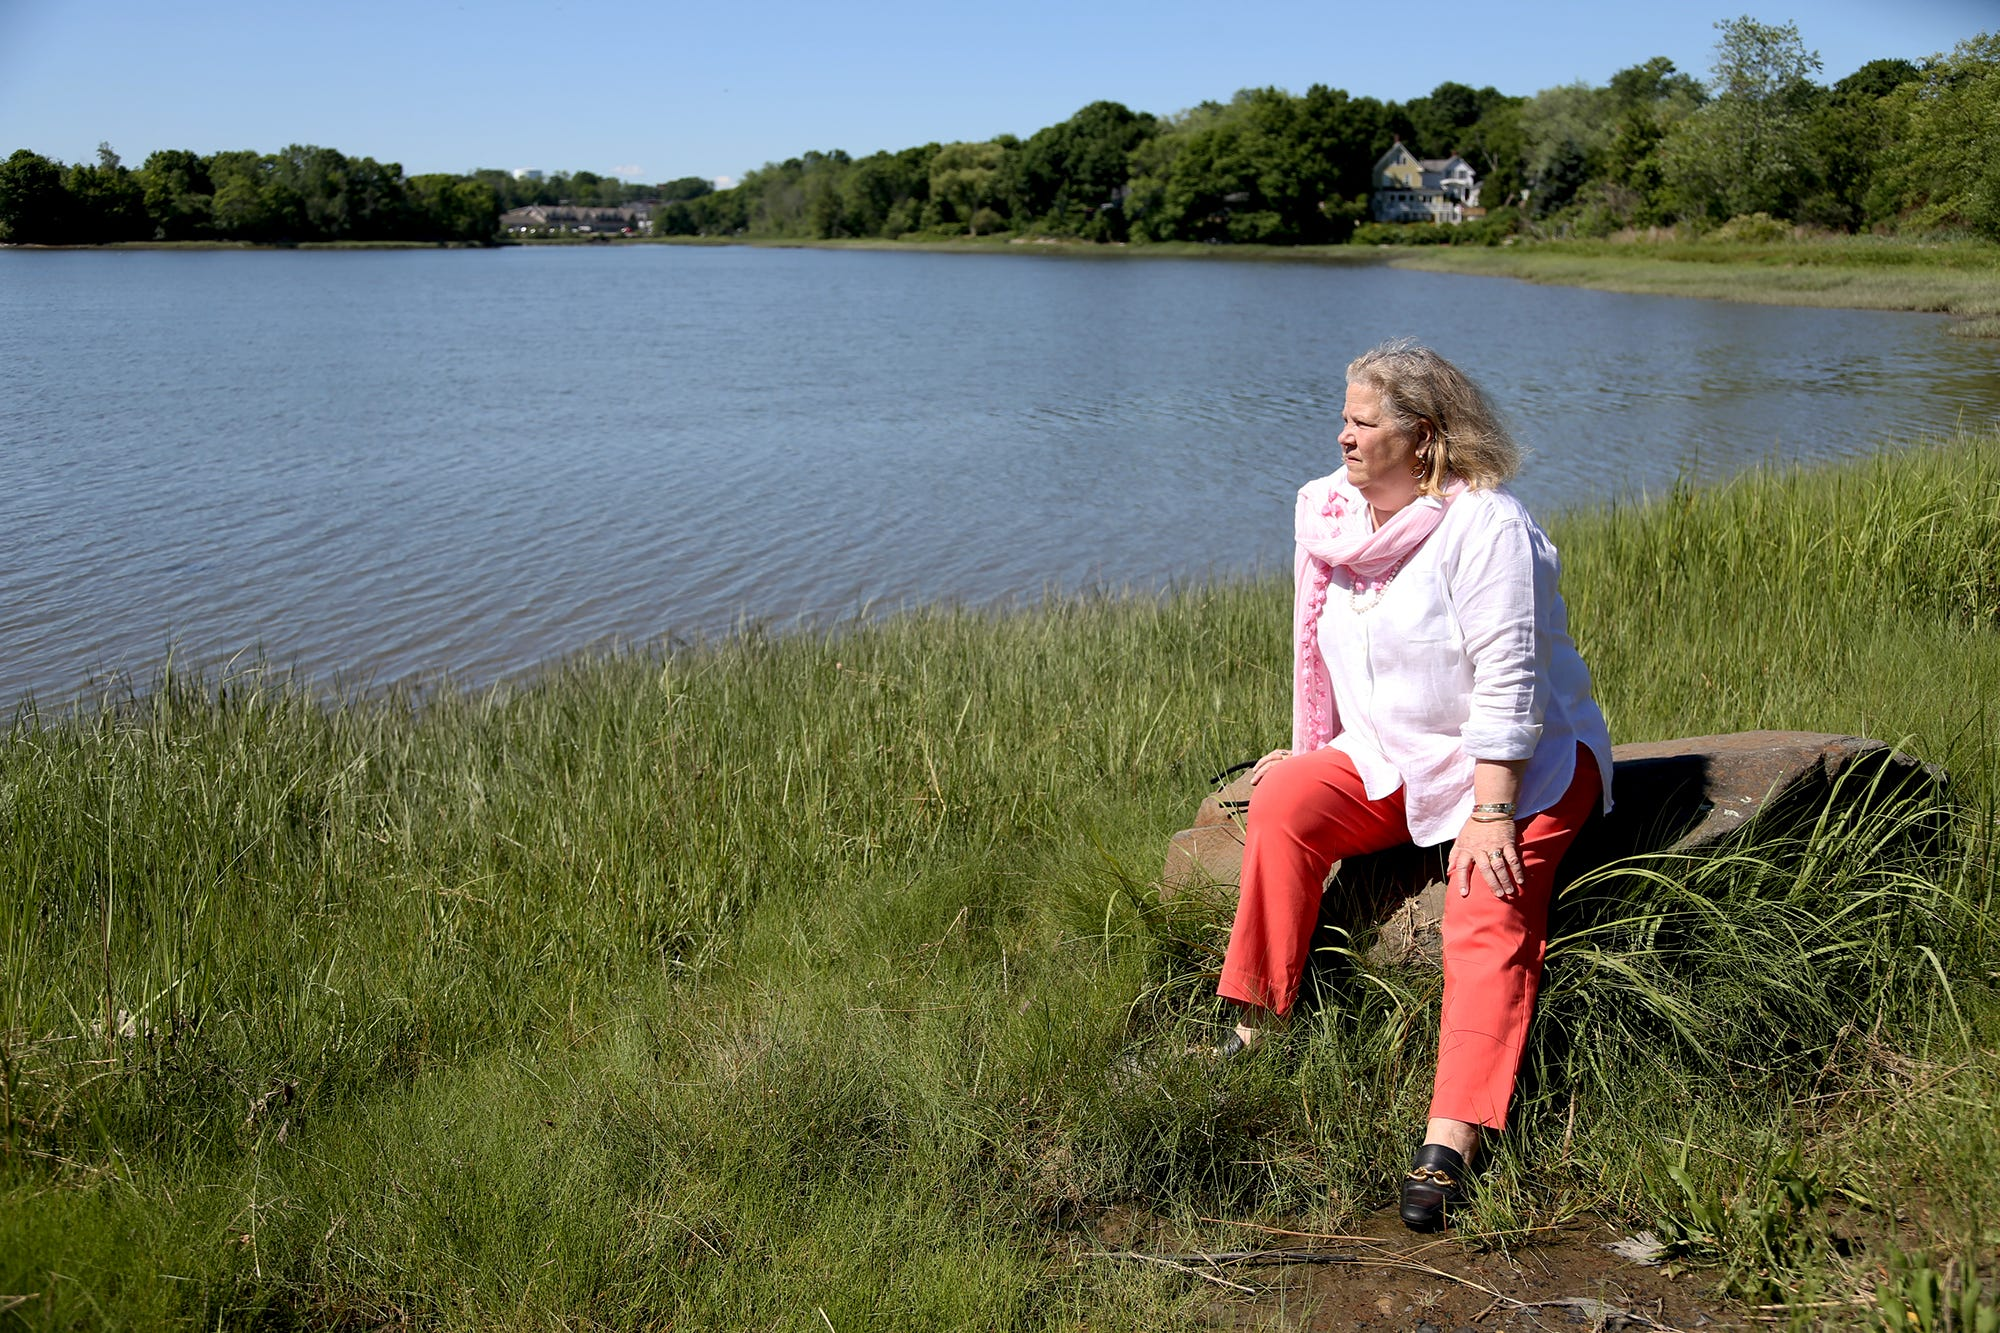 Portsmouth City Councilor Paige Trace is concerned about the impact of development on North Mill Pond in Portsmouth.